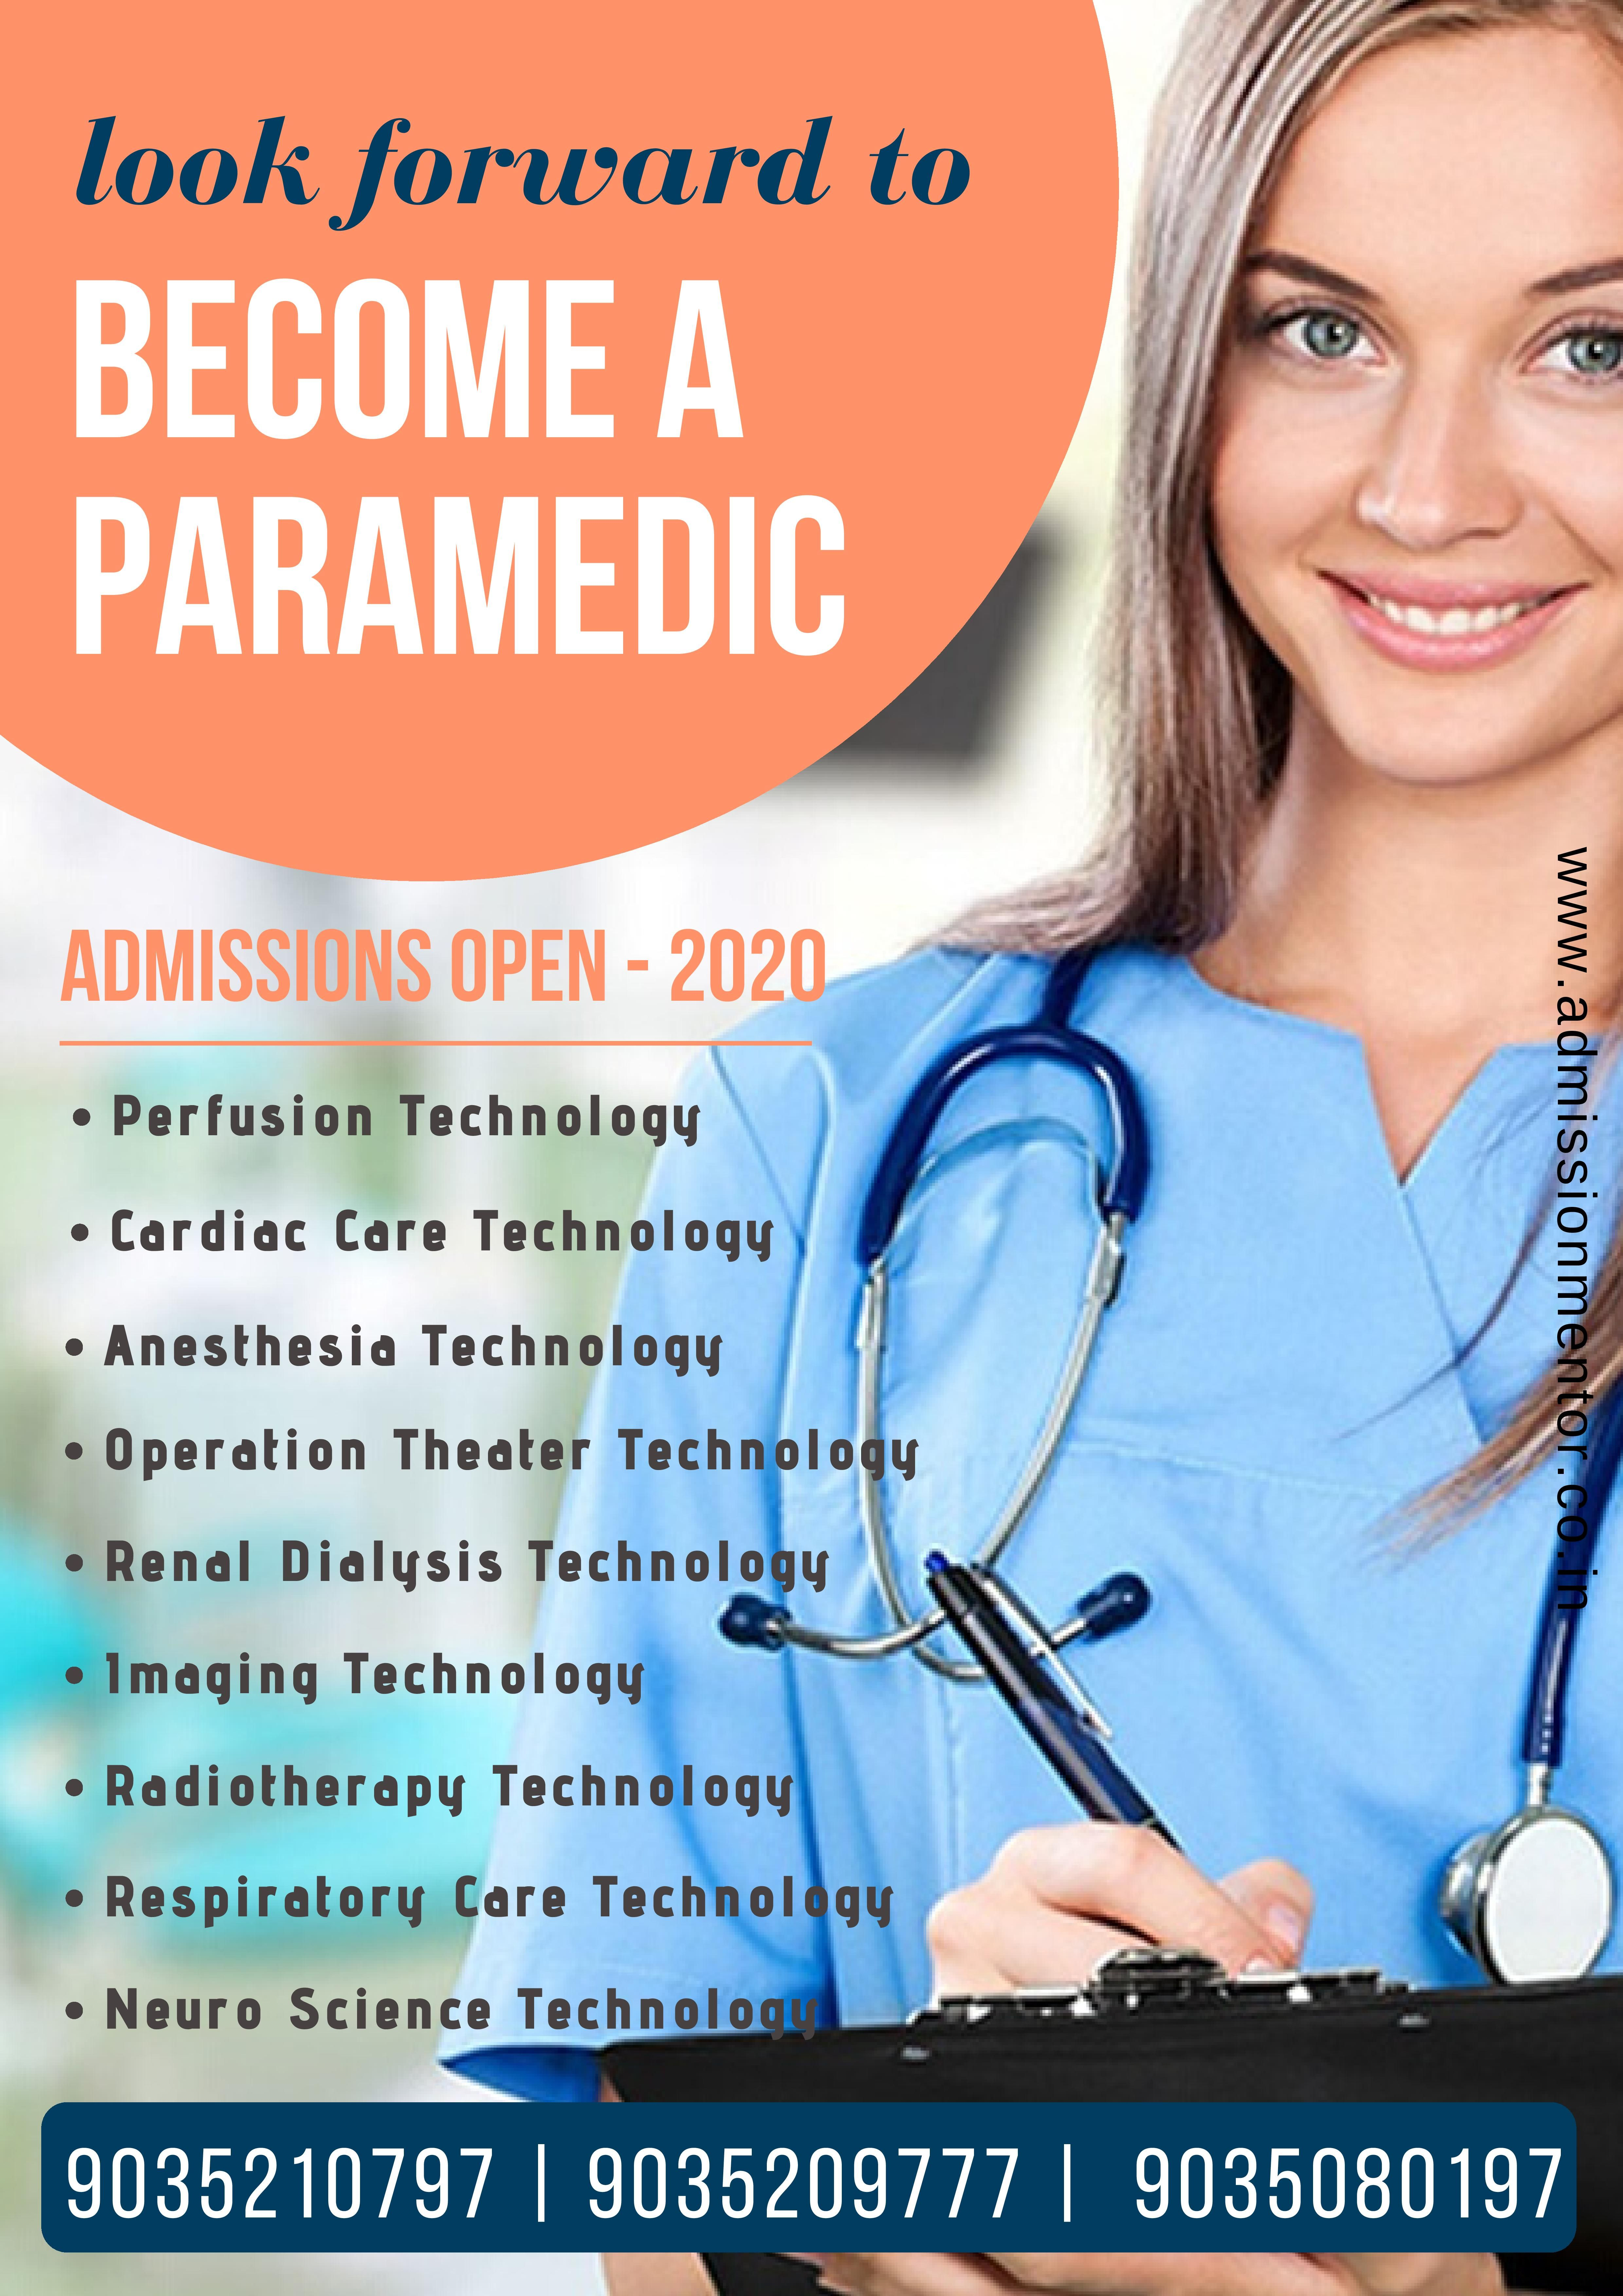 Paramedical Course Admissions Medical Imaging Technology Nuclear Medicine Technology Dialysis Therapy